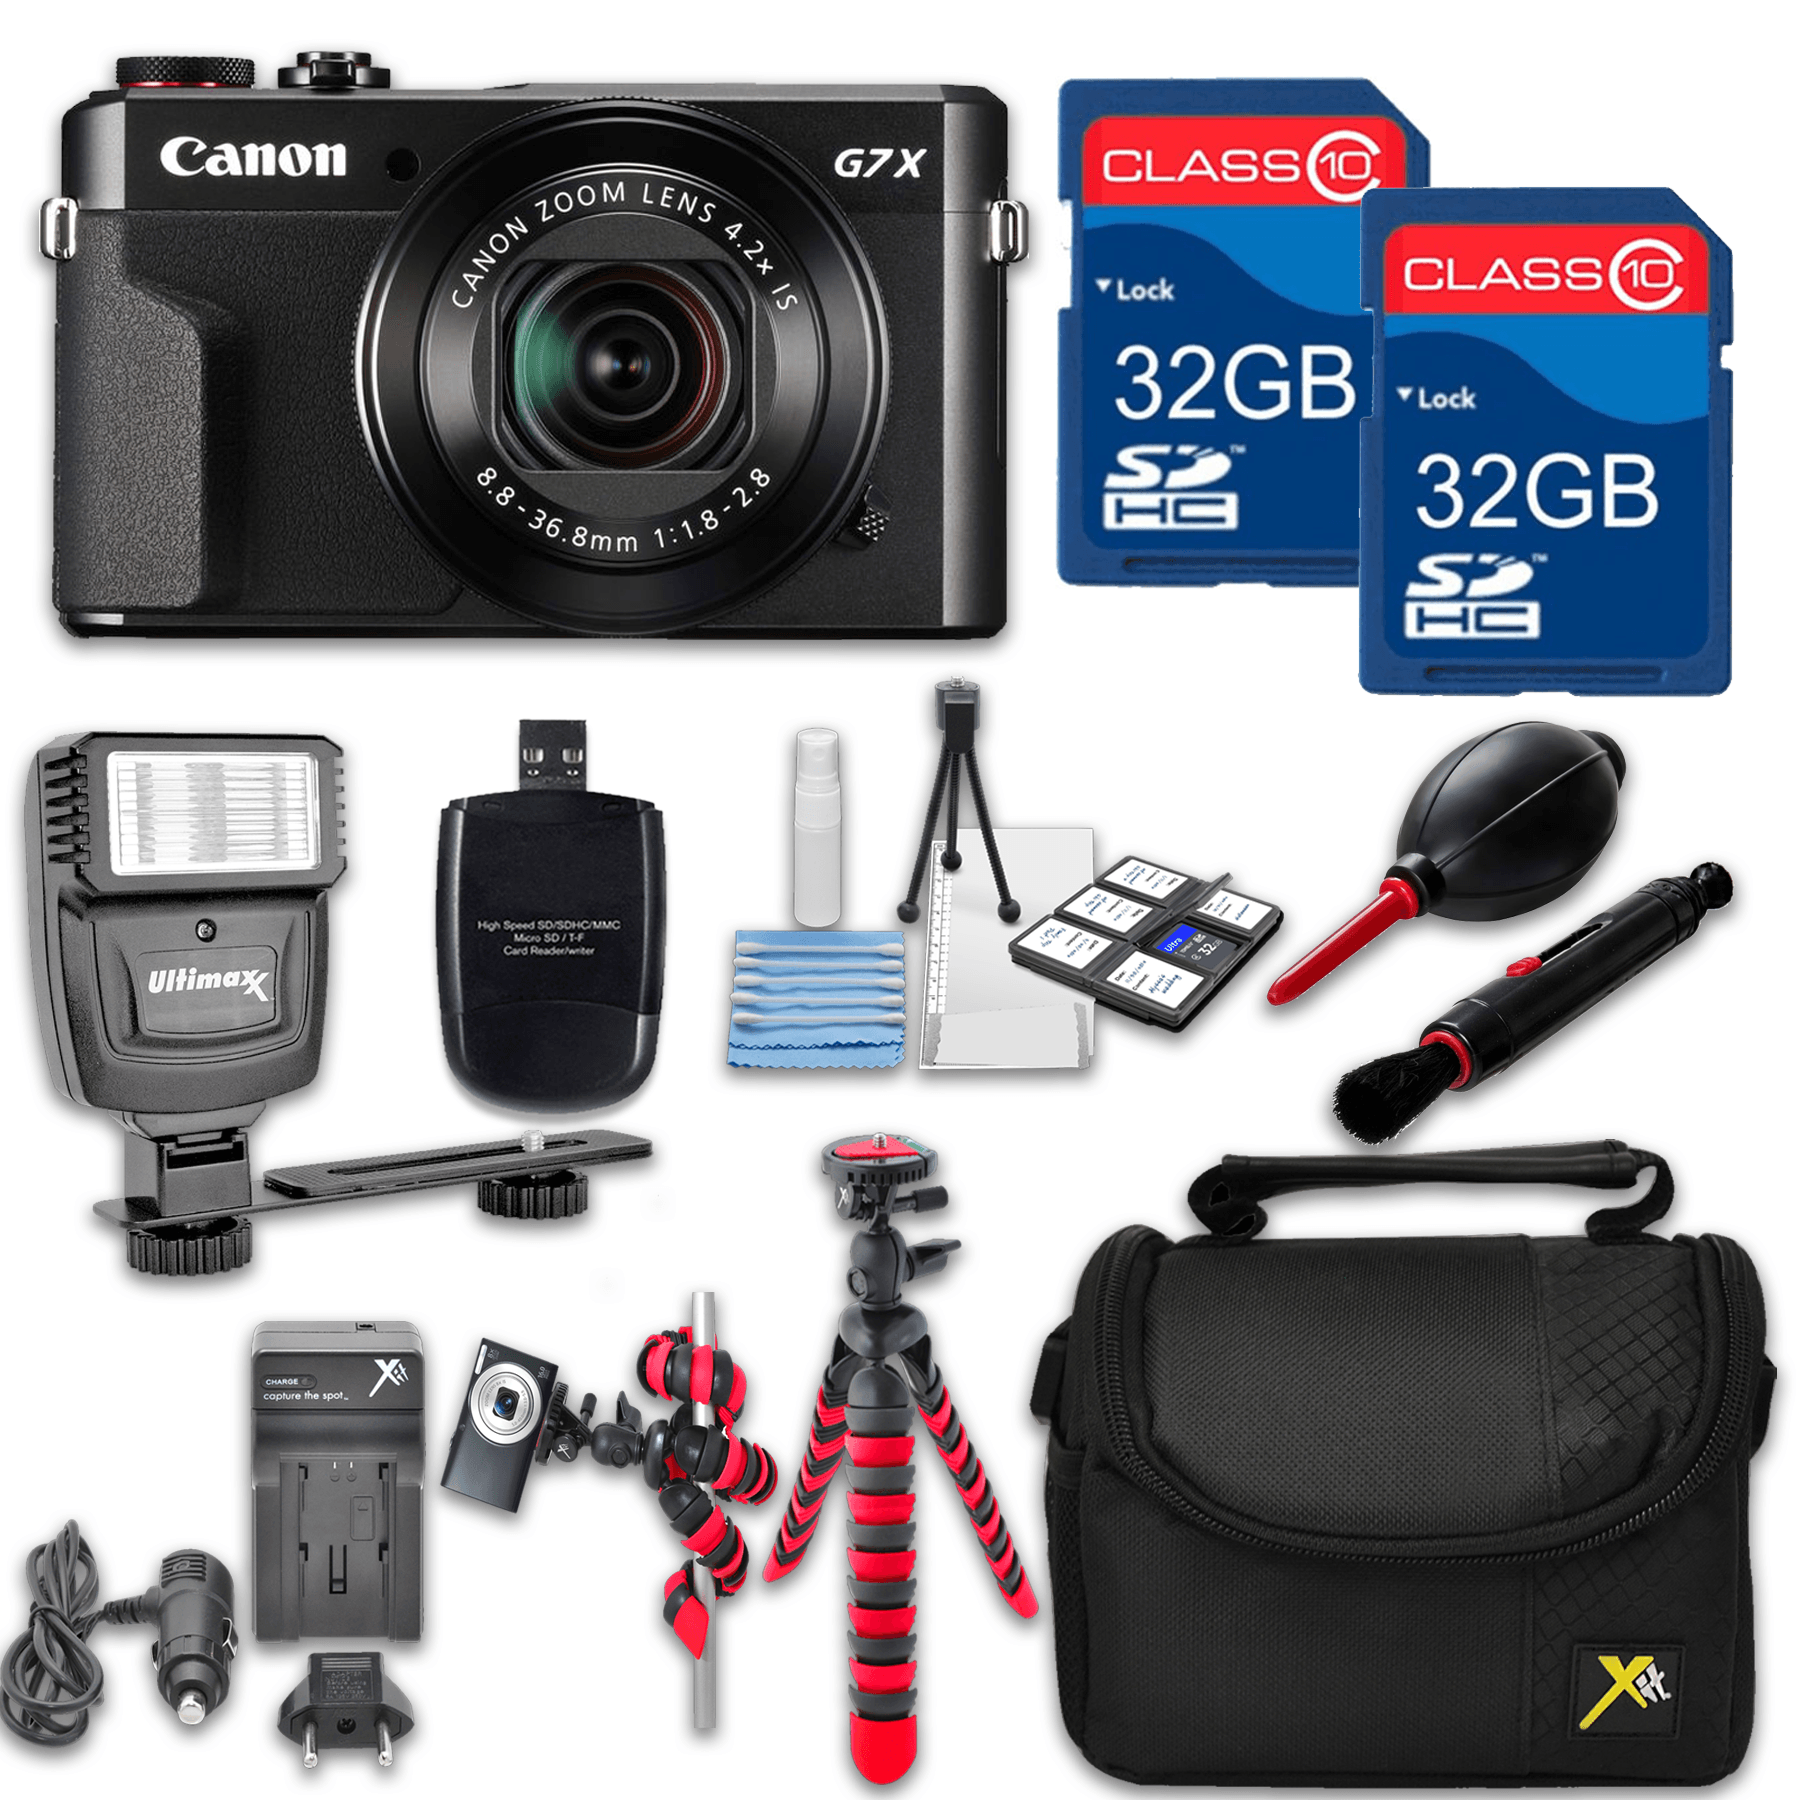 Canon Powershot G7 X Mark II (Black) HS Point and Shoot Digital Camera, W/ Case + 64GB Memory + Flash + Tripod + Case + Cleaning Kit + More